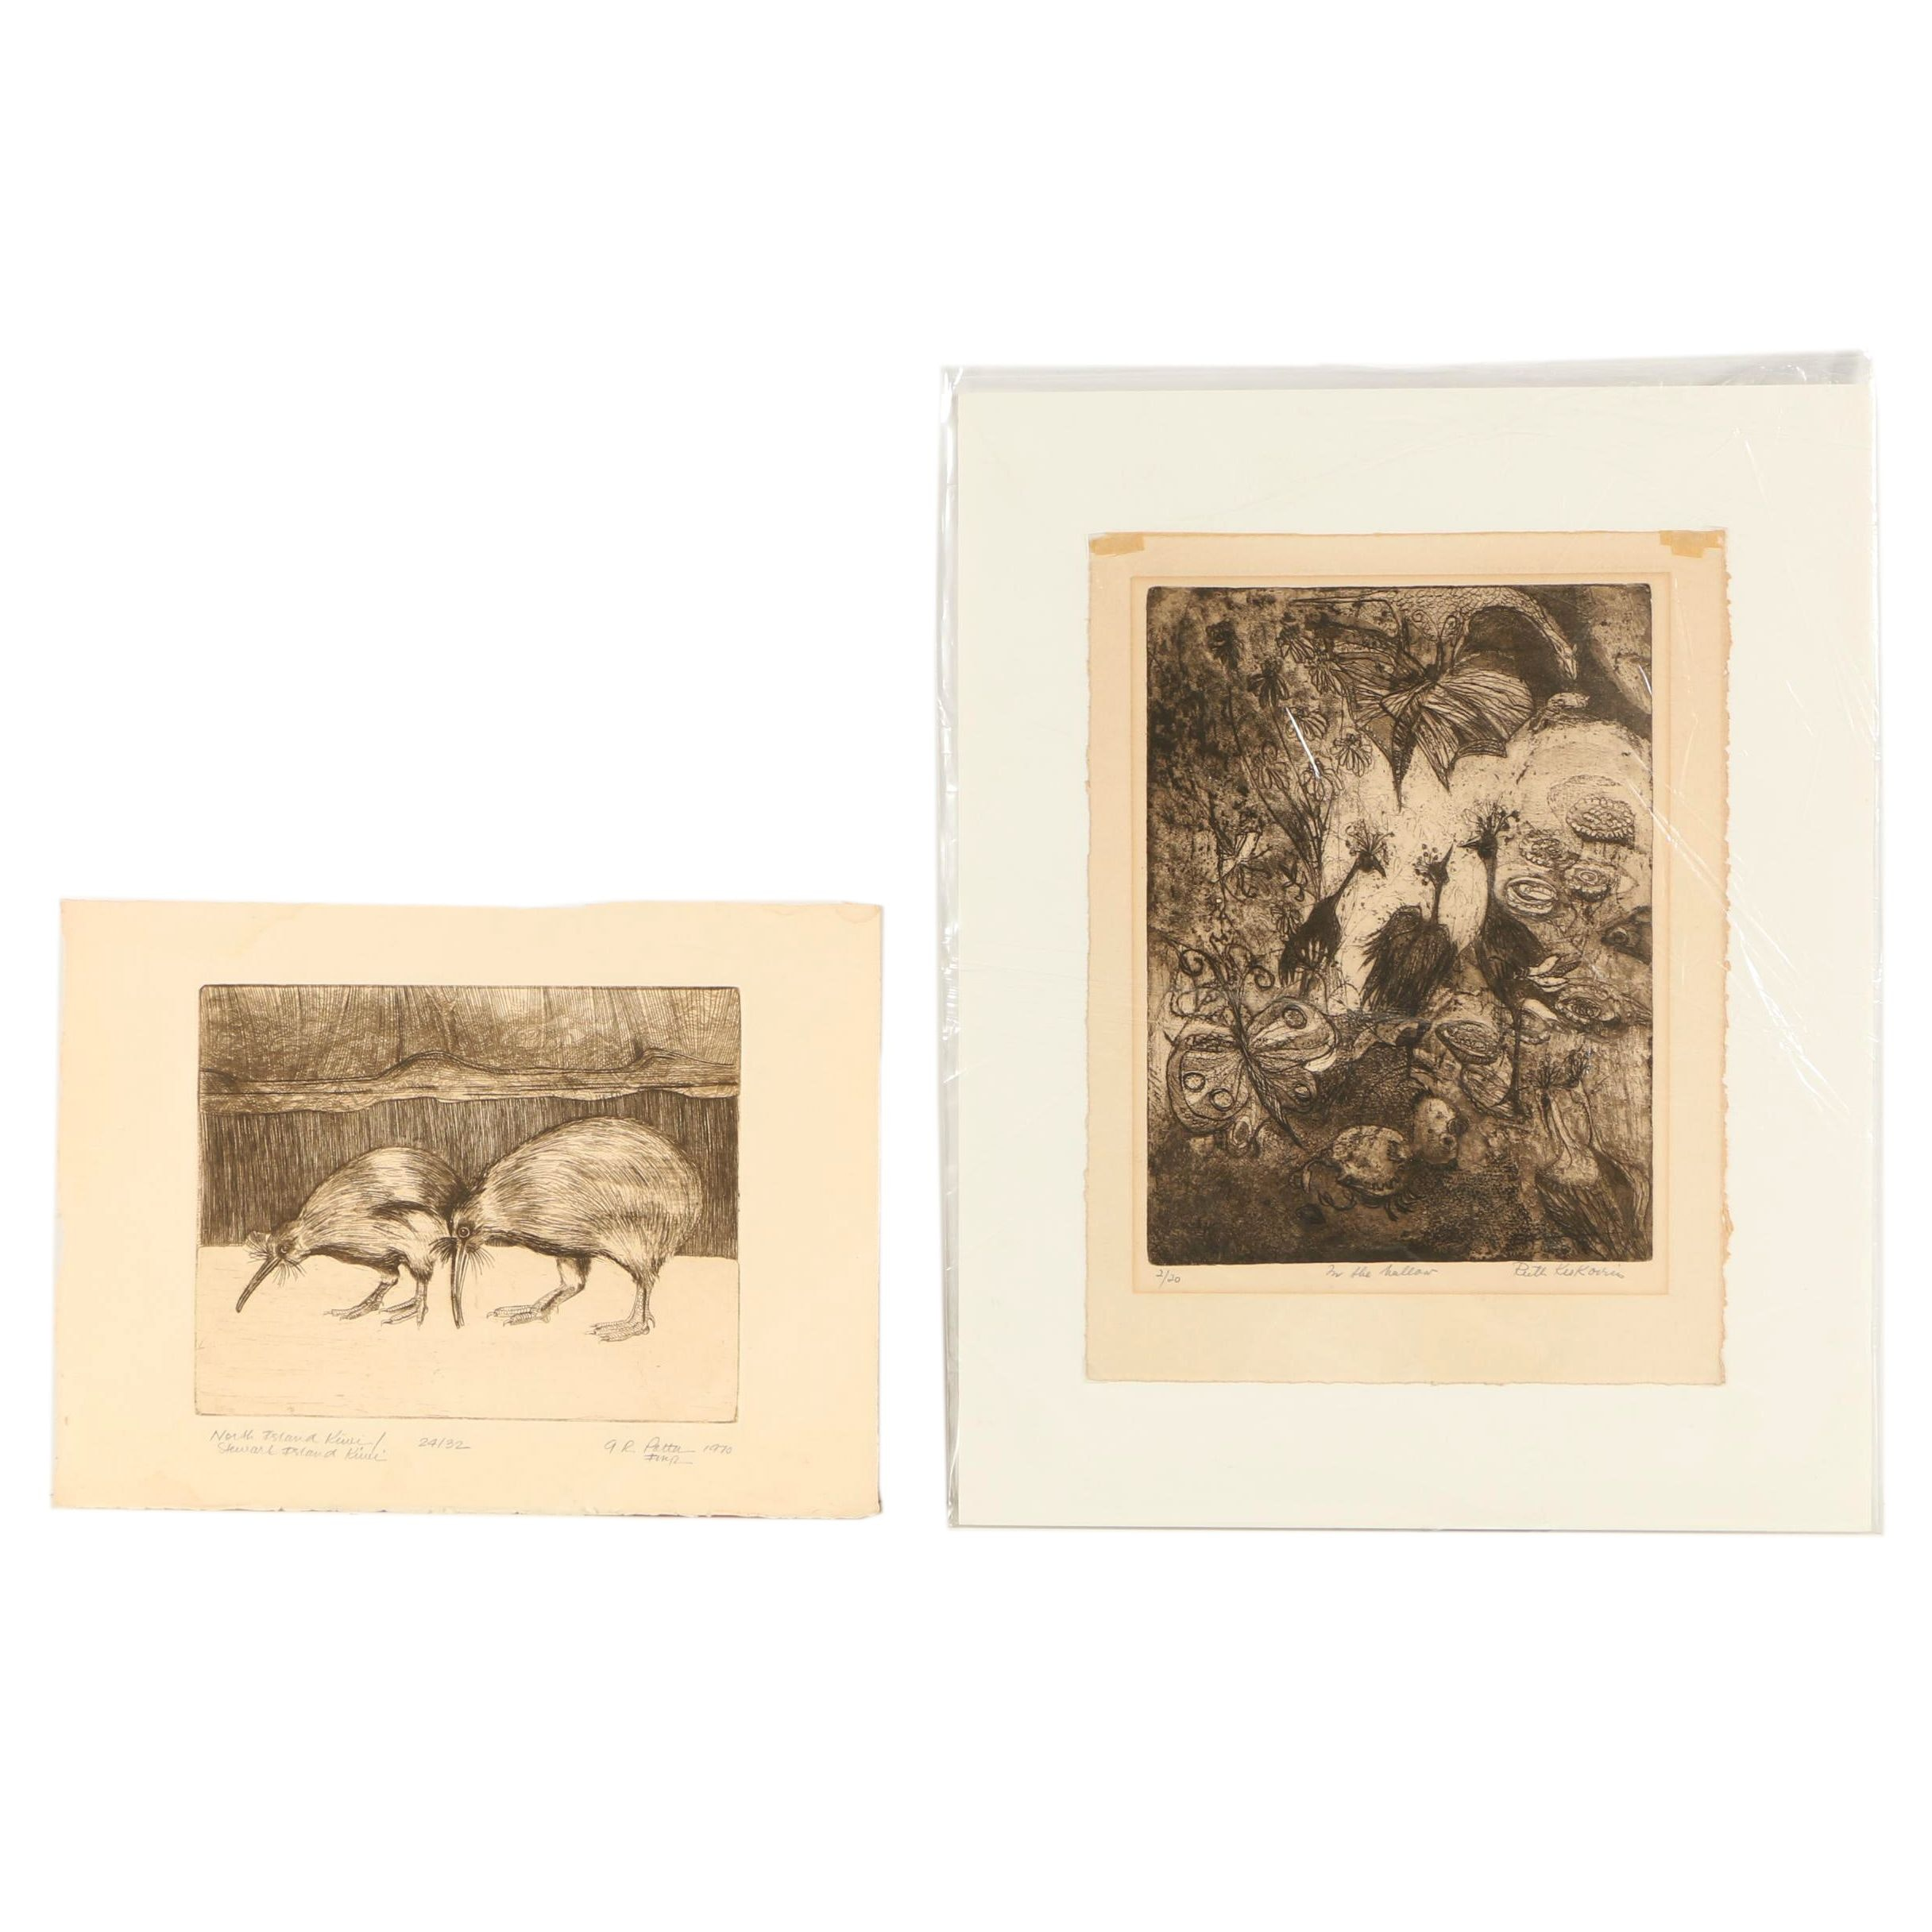 Etchings Featuring Kiwis and Abstract Composition